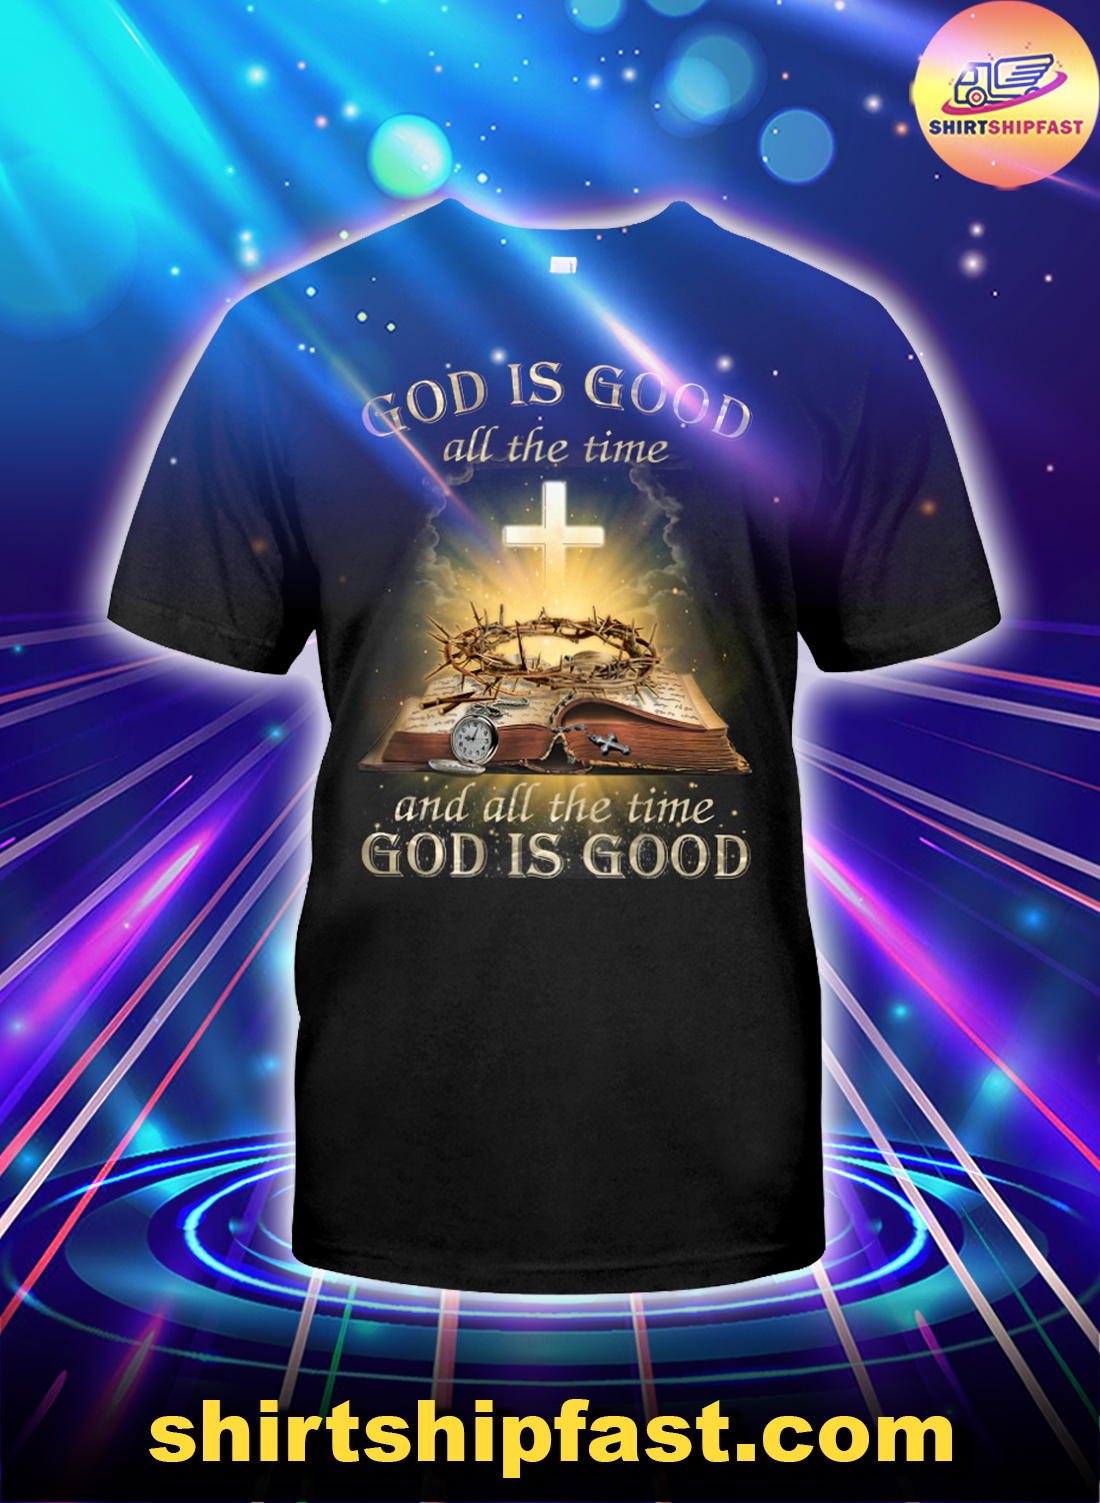 God is good all the time annd all the time god is good shirt